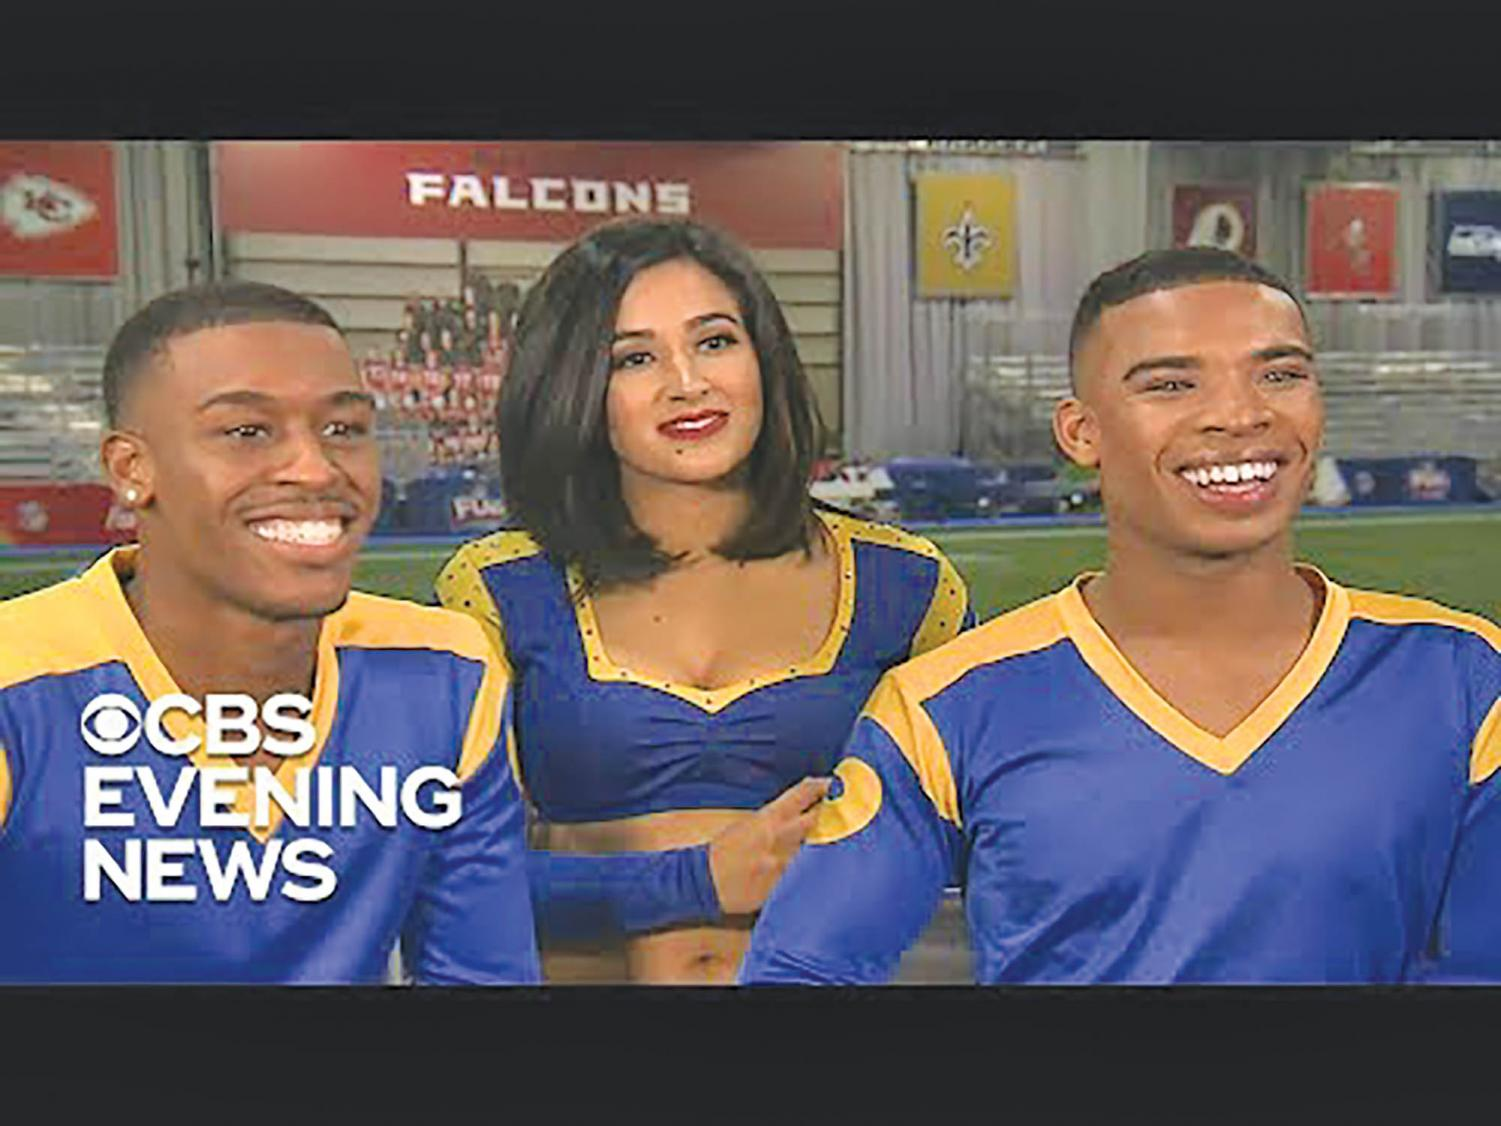 Quinton Peron (left) and Napoleon Jinnies (right) of the LA Rams were the first NFL male cheerleaders to perform at a Super Bowl.